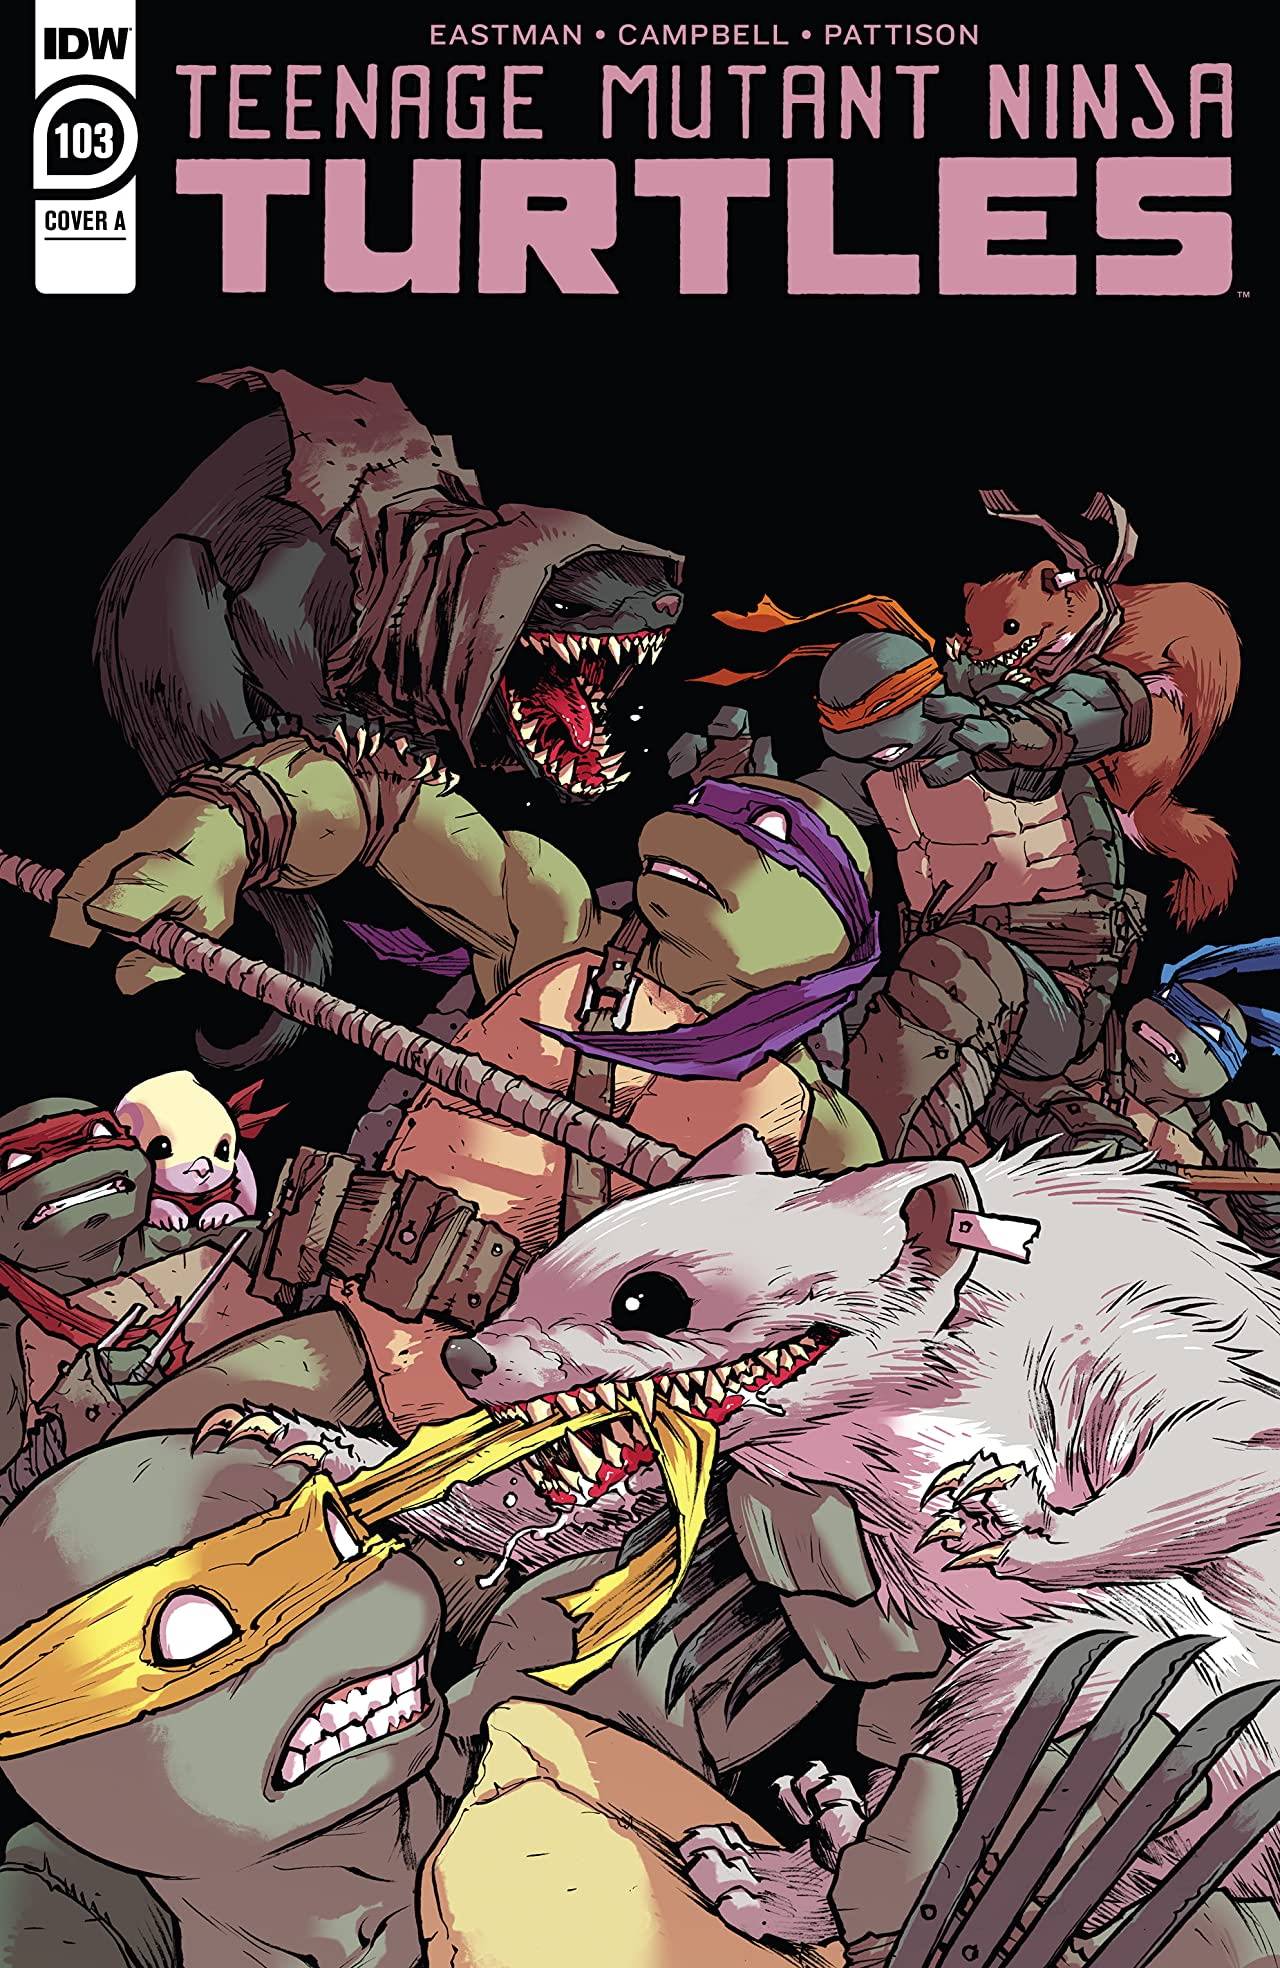 Teenage Mutant Ninja Turtles #103